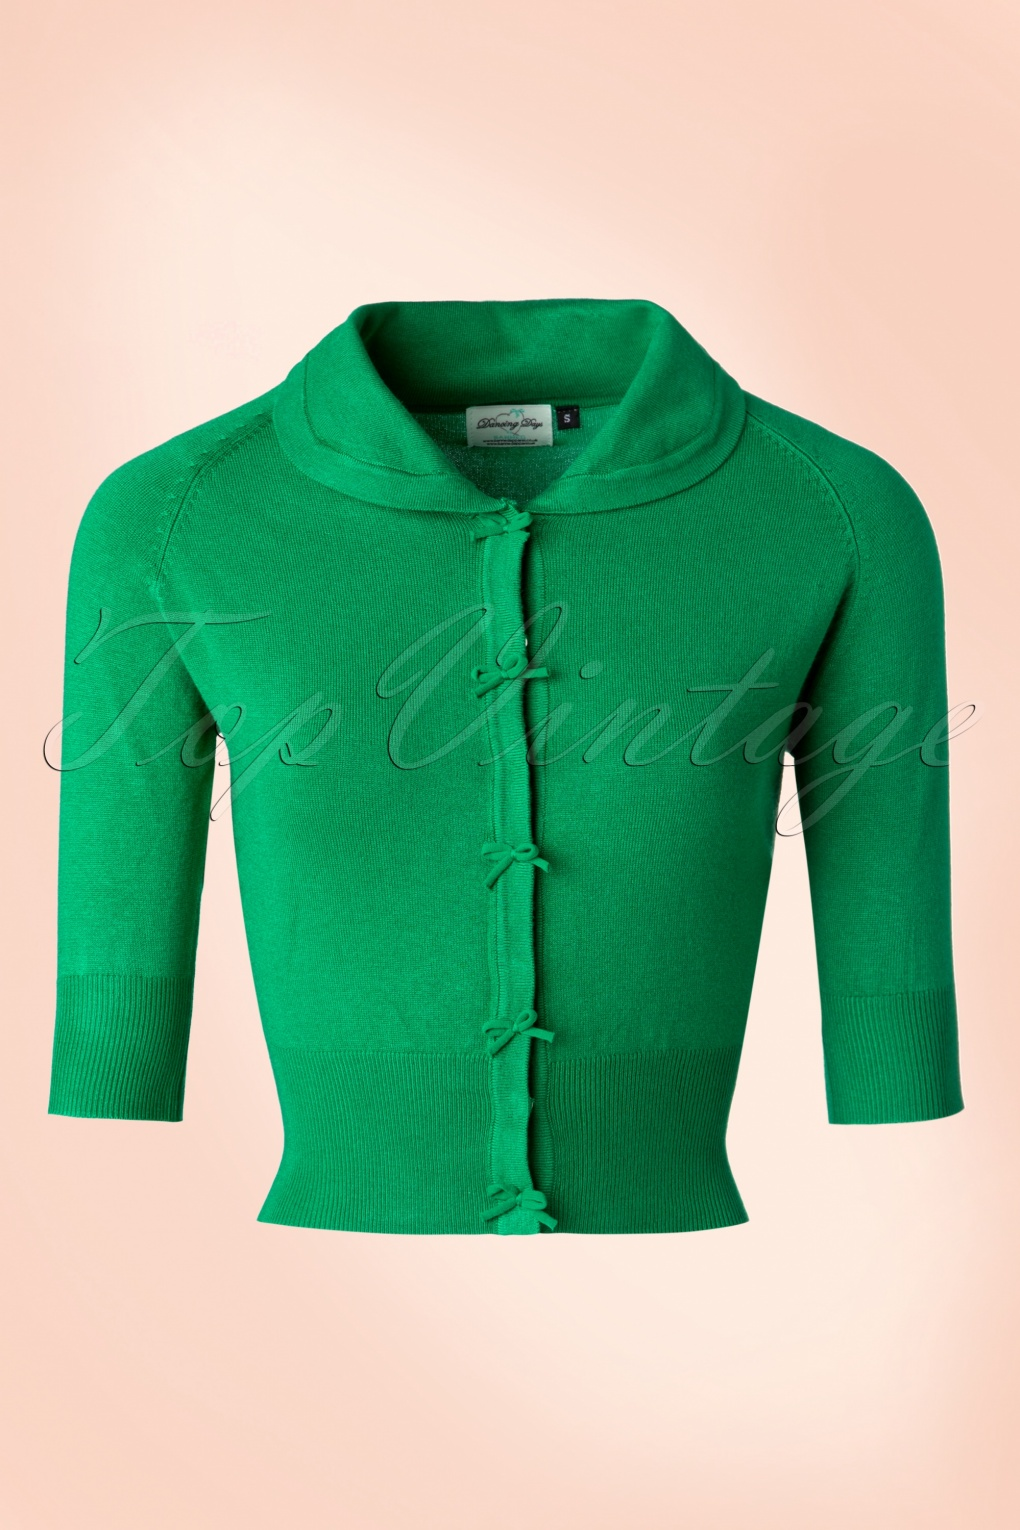 1940s Blouses, Shirts and Tops Fashion History 40s April Bow Cardigan in Green £34.70 AT vintagedancer.com